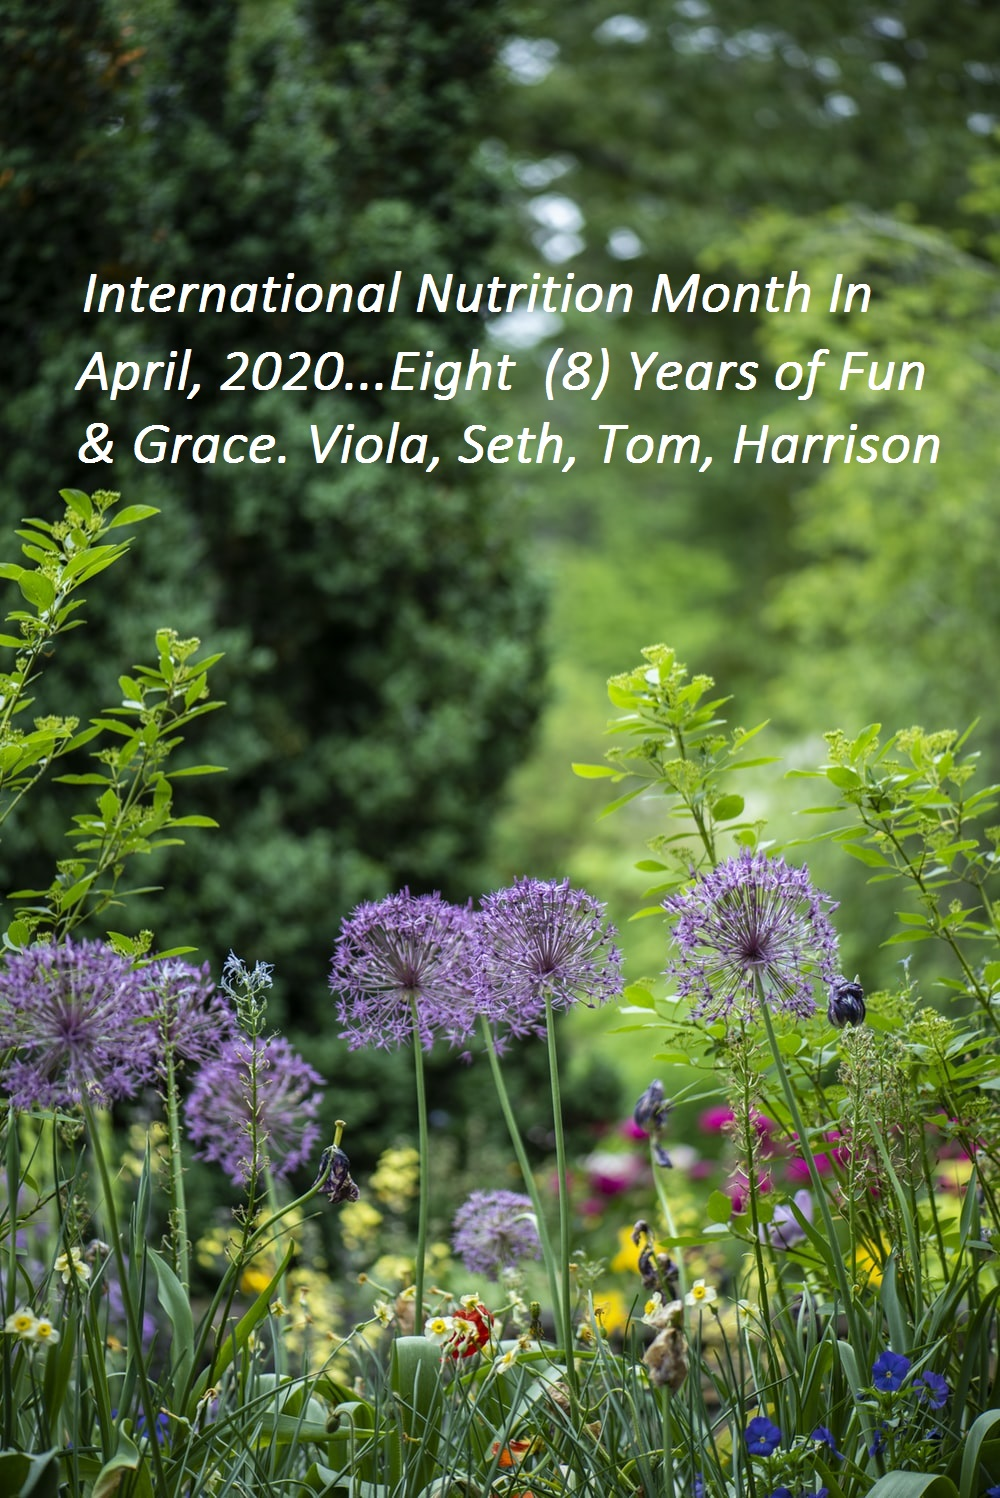 celebrating international nutrition month is april 2020 from 2013